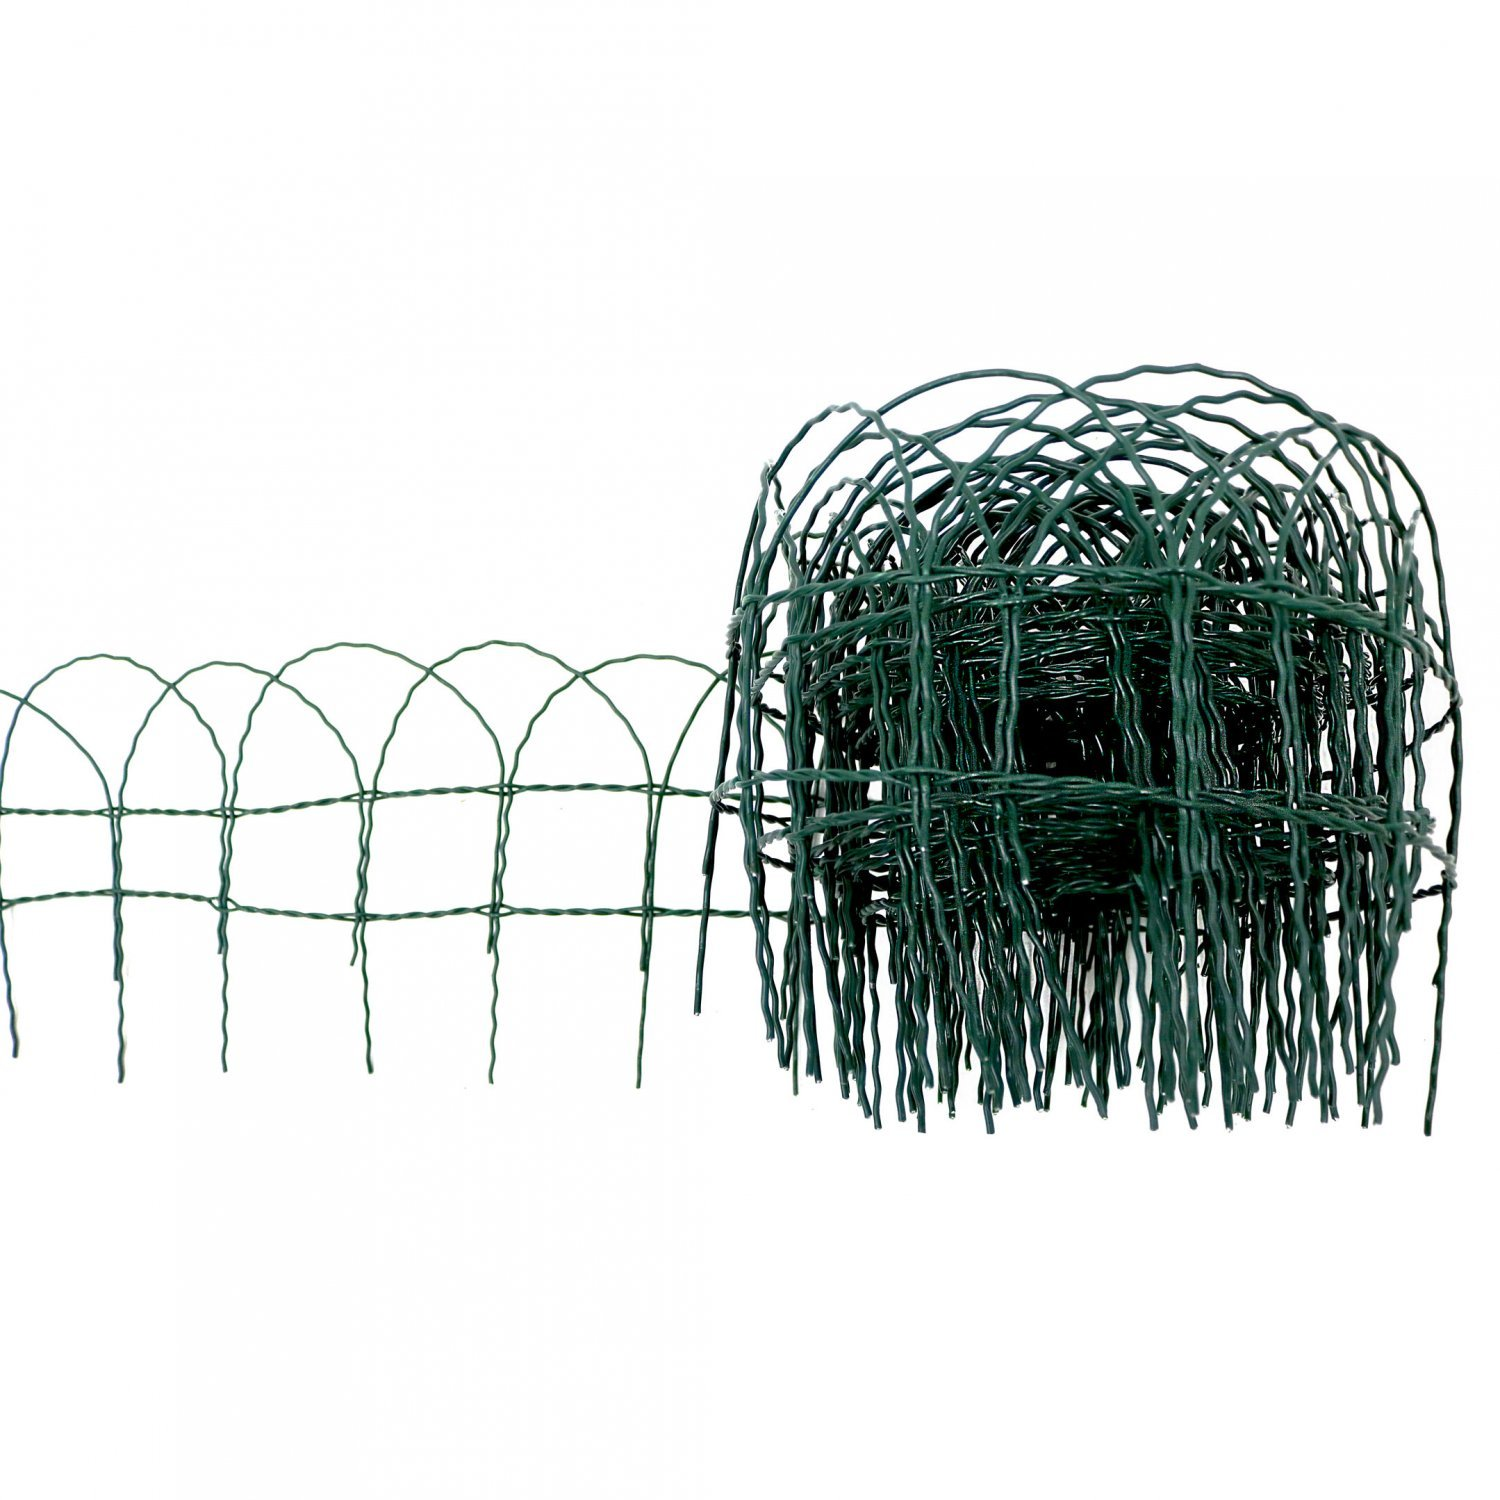 10m x 250mm Garden Lawn Border Edging Fencing PVC Coated Wire ...